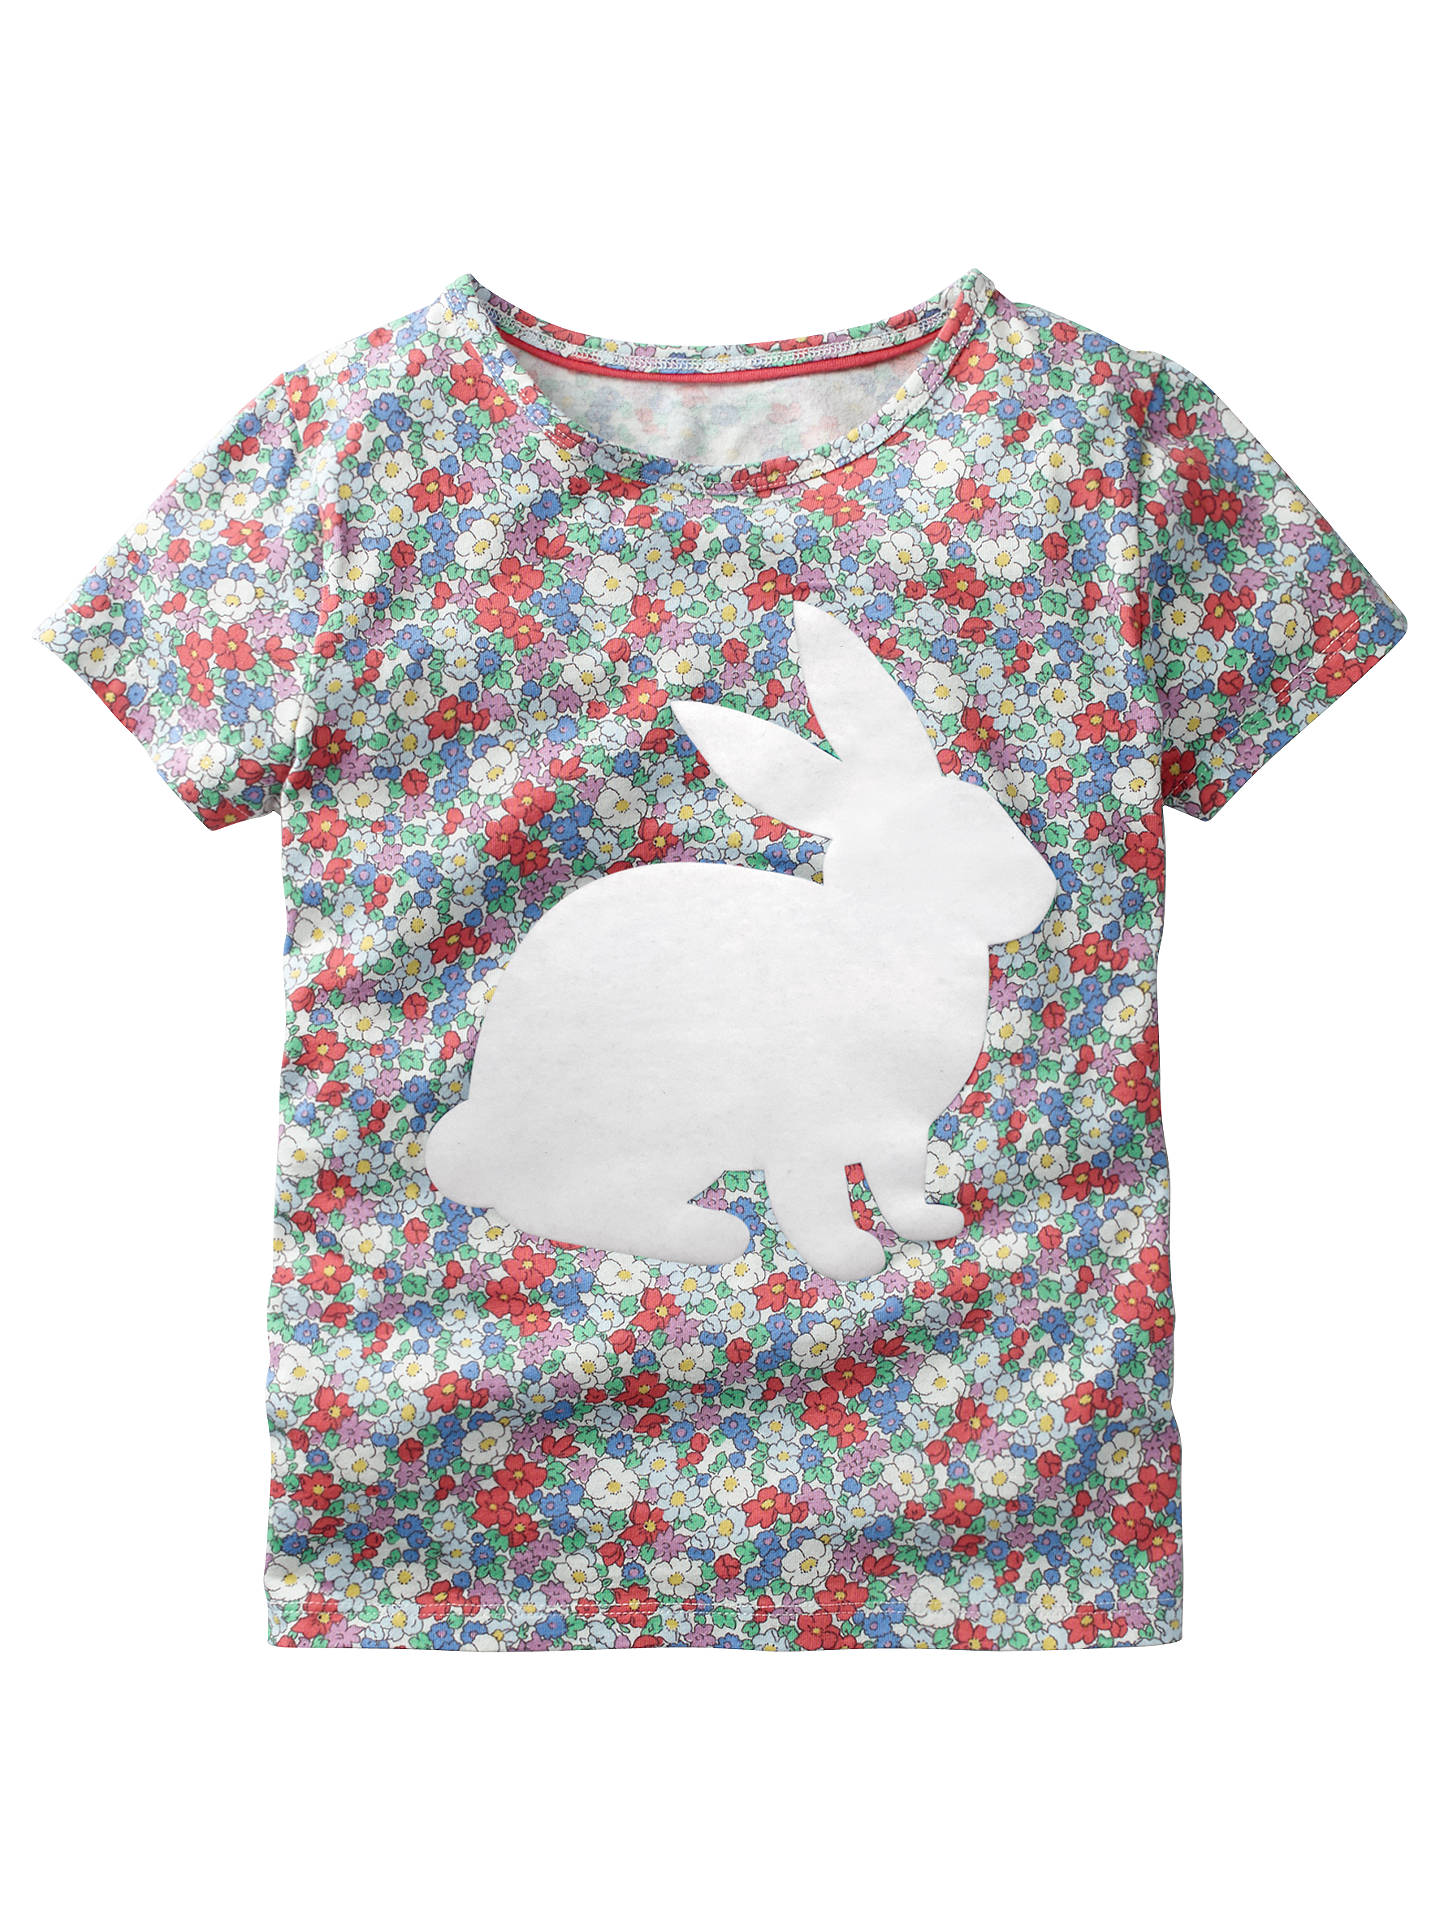 766b7848 Mini Boden Girls' Flock Printed Rabbit T-Shirt, Multi at John Lewis ...